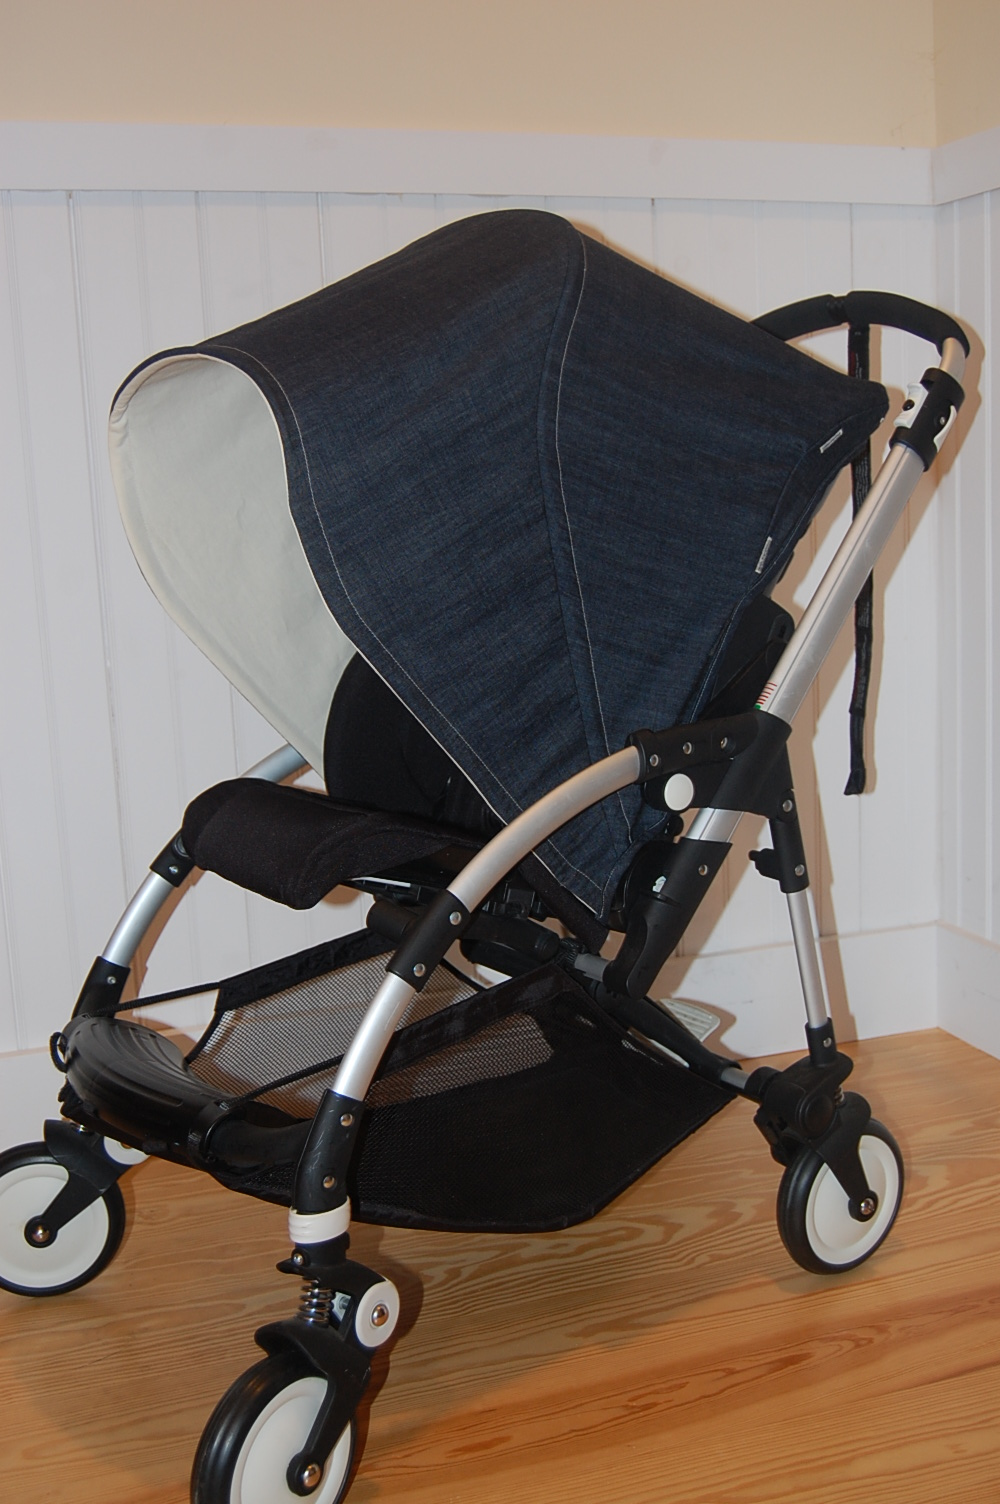 ... canopy to be lined in an ivory cotton canvas and also asked for the stitching to be ivory. As you can see from the image this set turned out excellent. & Maine Baby Treats - Custom Bugaboo Stroller Covers: Denim Bugaboo ...